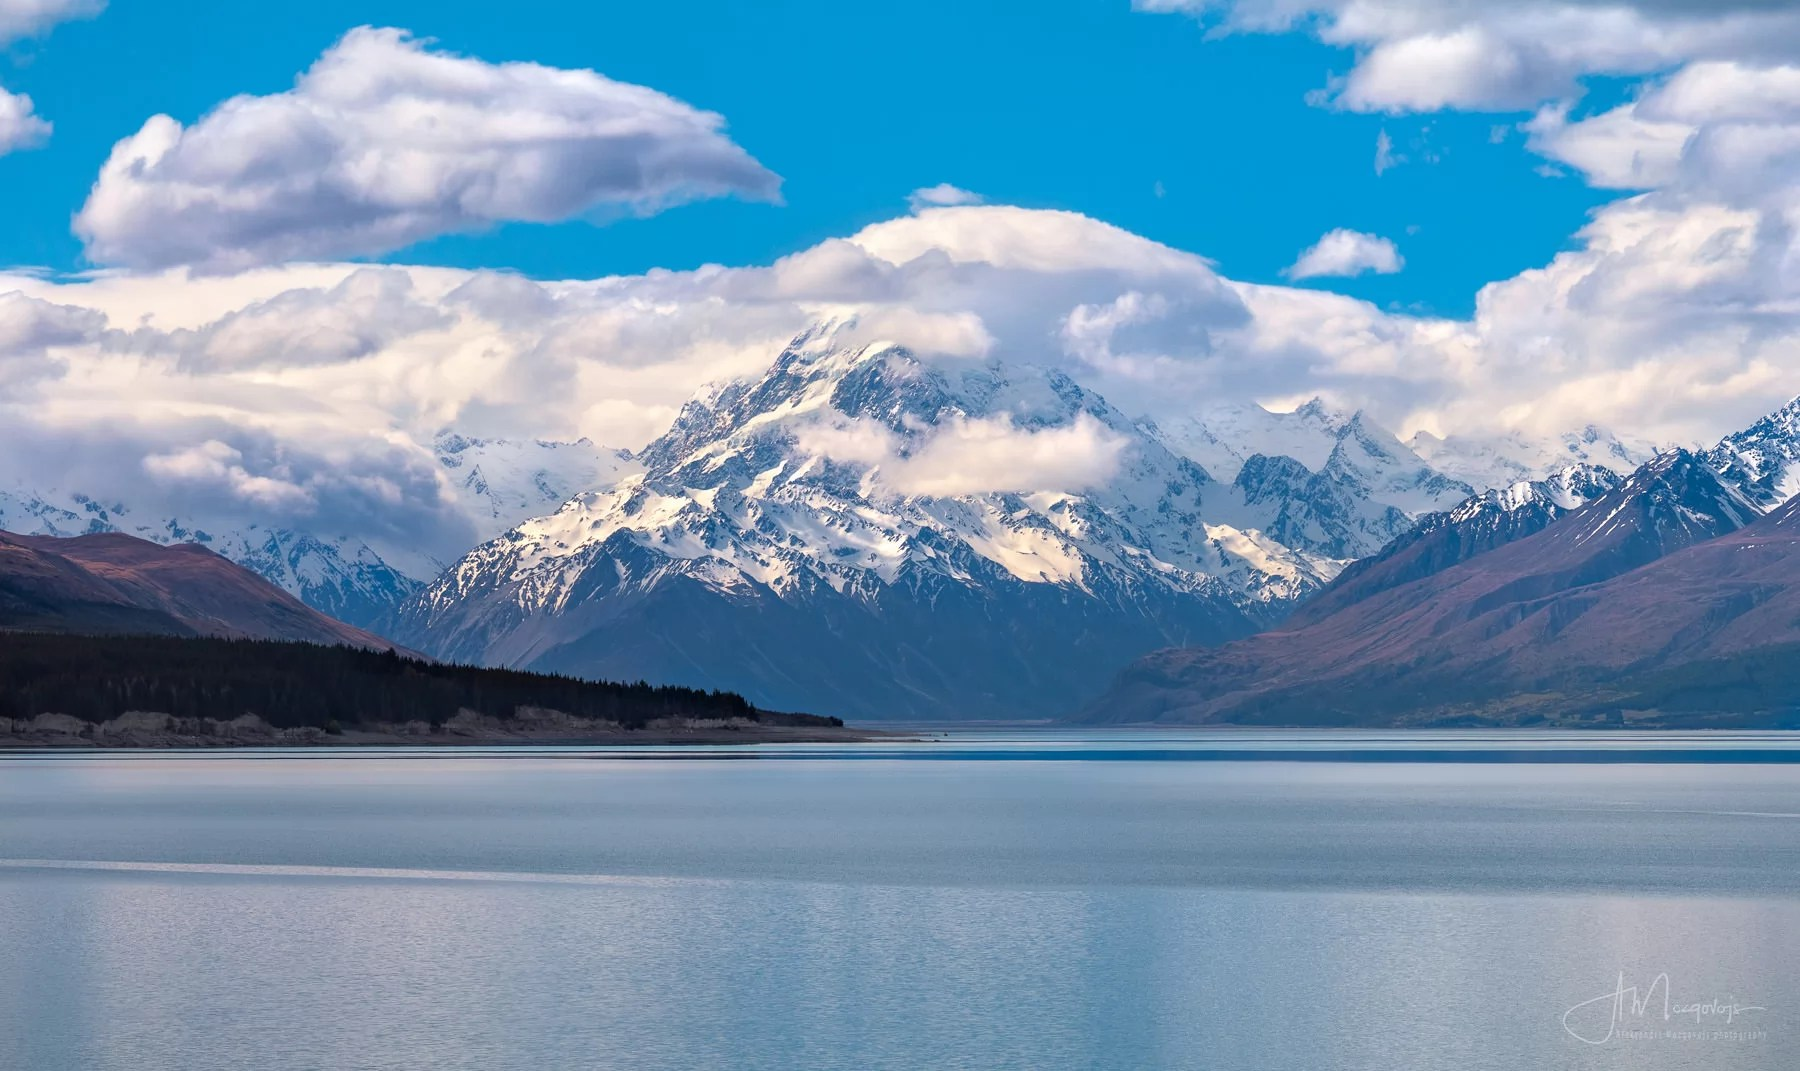 Lake Pukaki Viewing Point is a great landscape photography location near Mount Cook